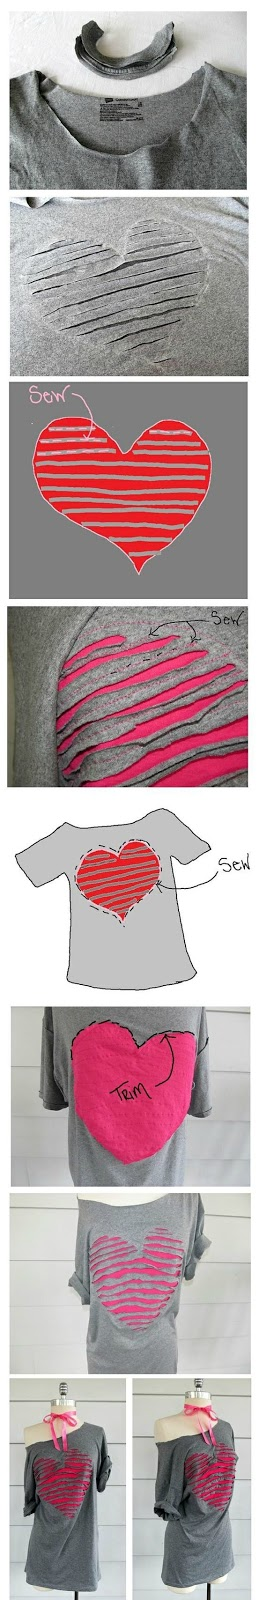 diy customizando camiseta con un corazón